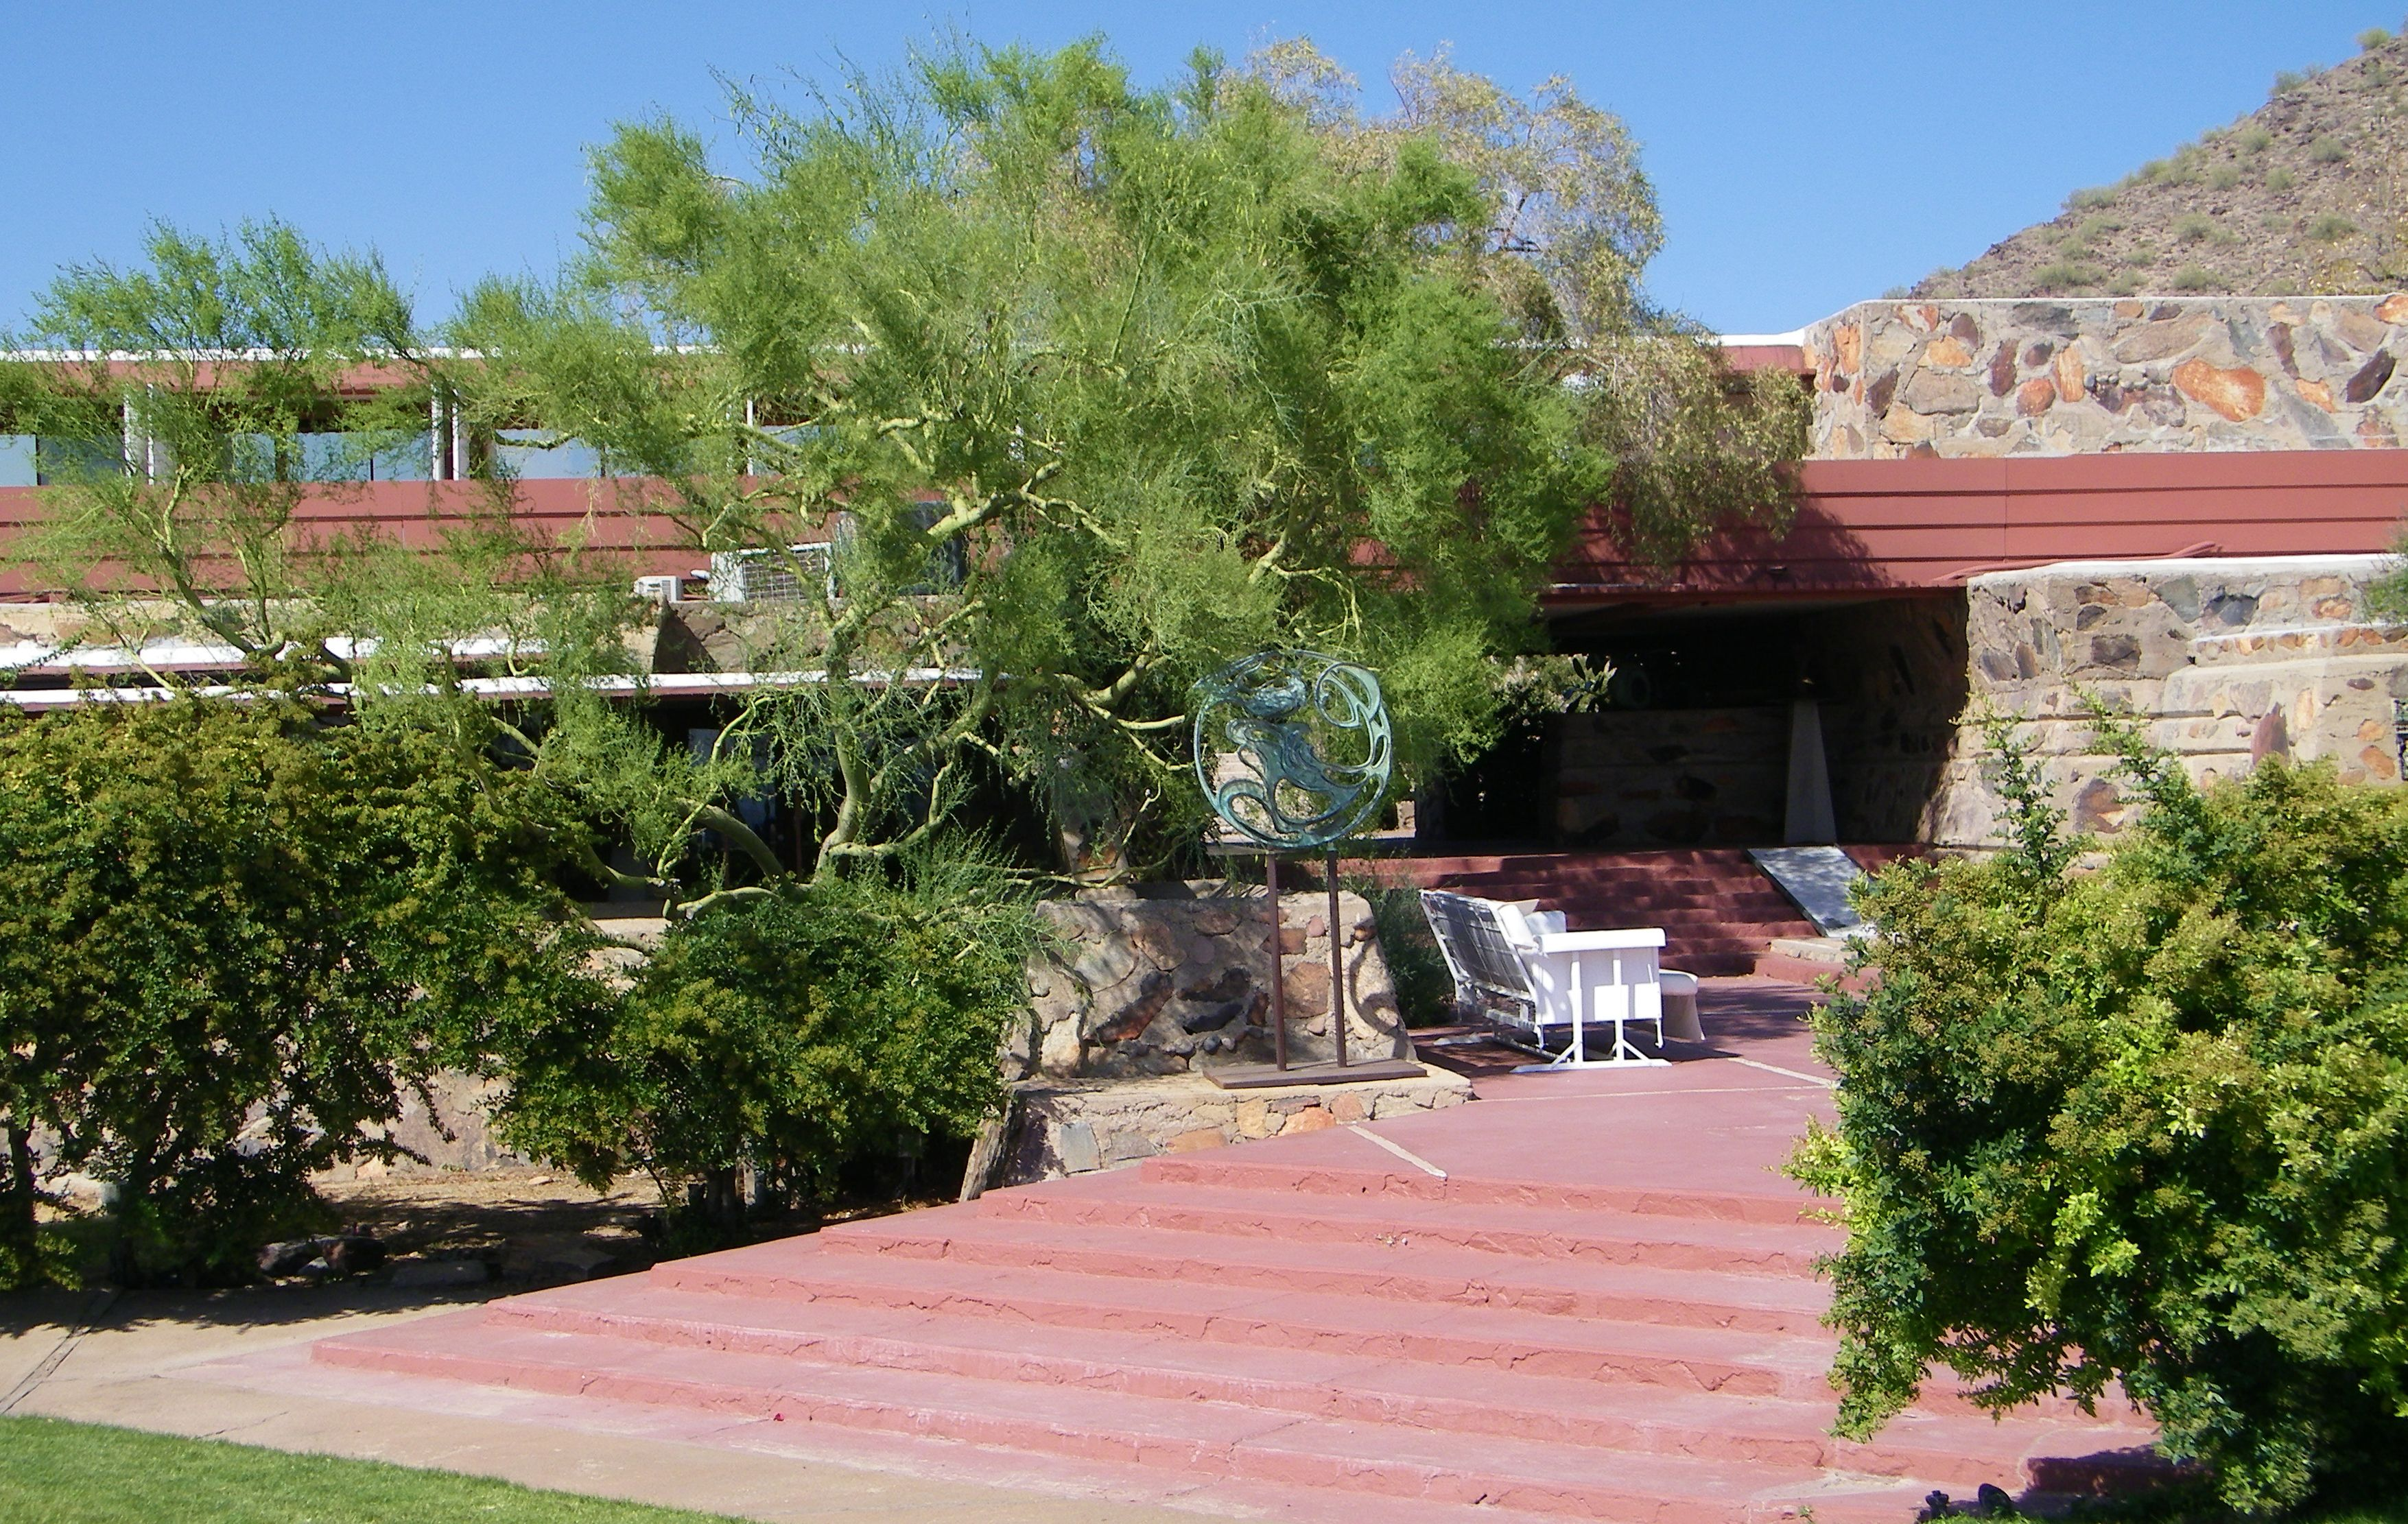 Taliesin West Frank Lloyd Wright  via Timesharetraveling.com. see all of the pics and Information...A must see if you are in the area.